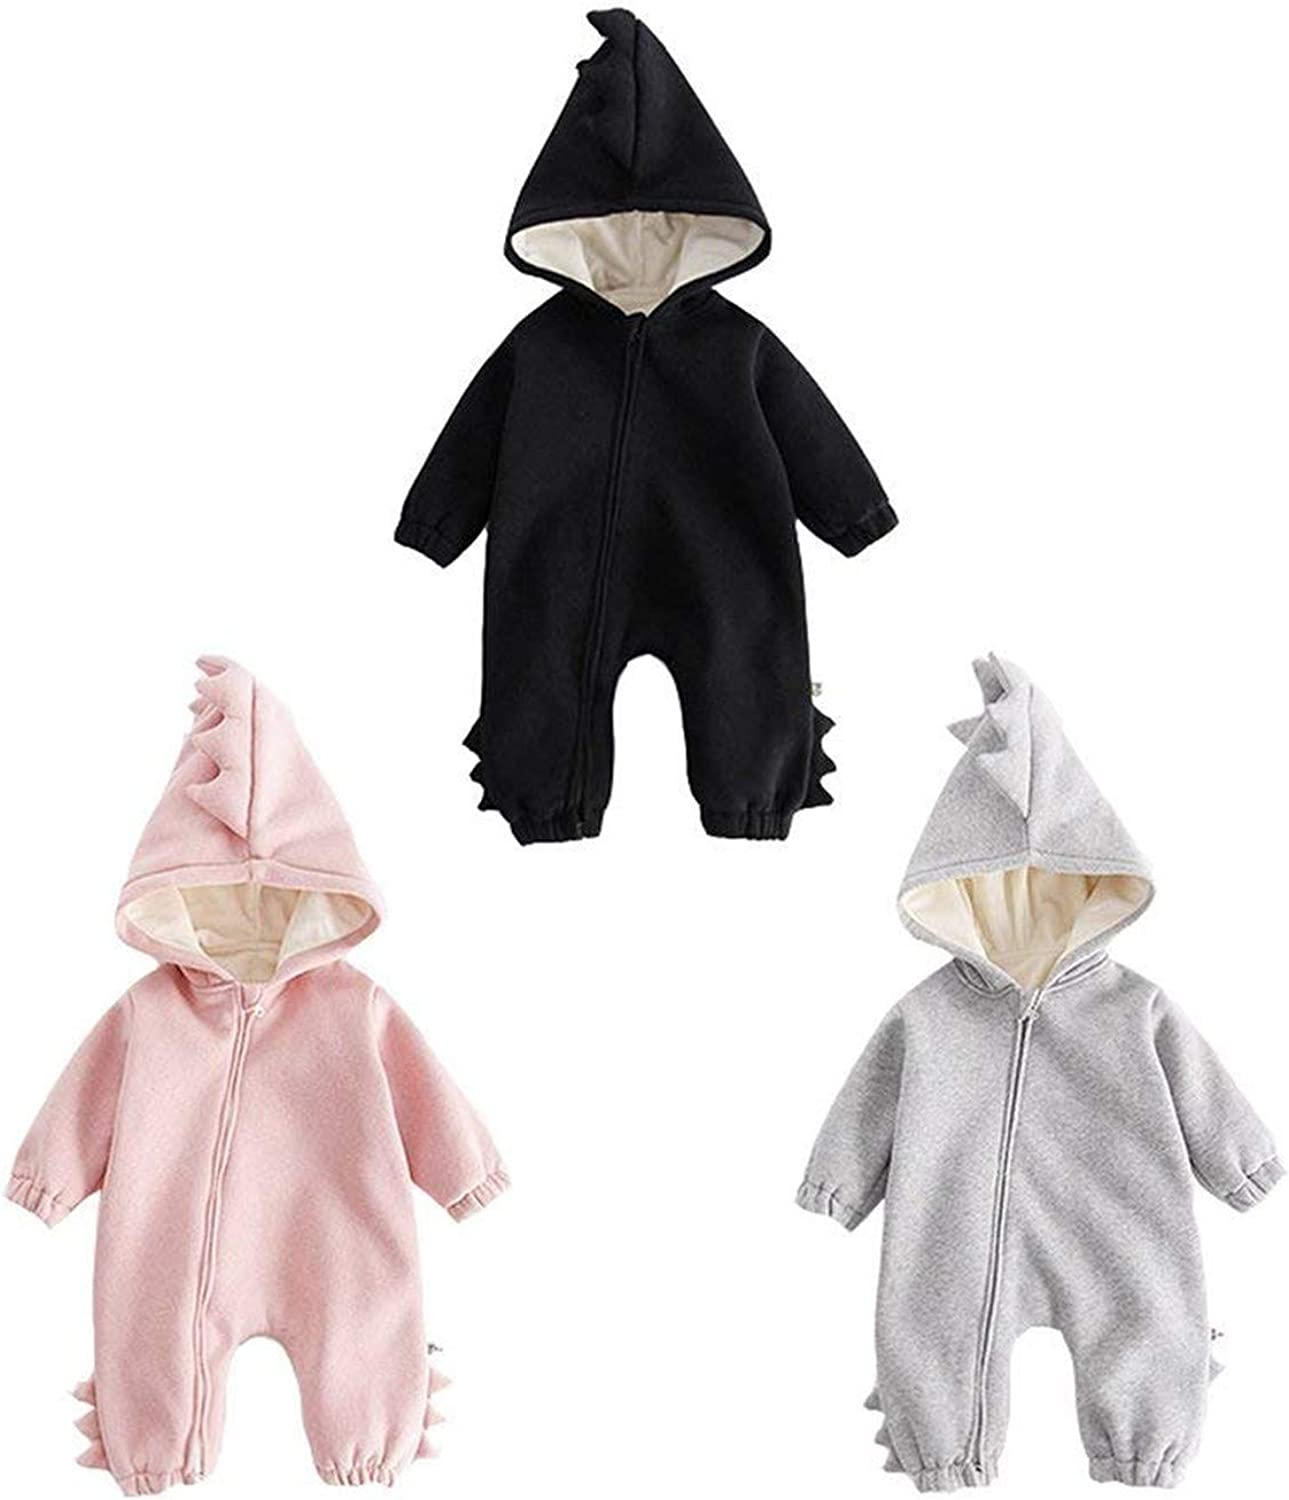 Carlos Foushee Infant Baby Boys-Girls Dinosaur Outfit Winter Warm Jumpsuit Thick Outwear